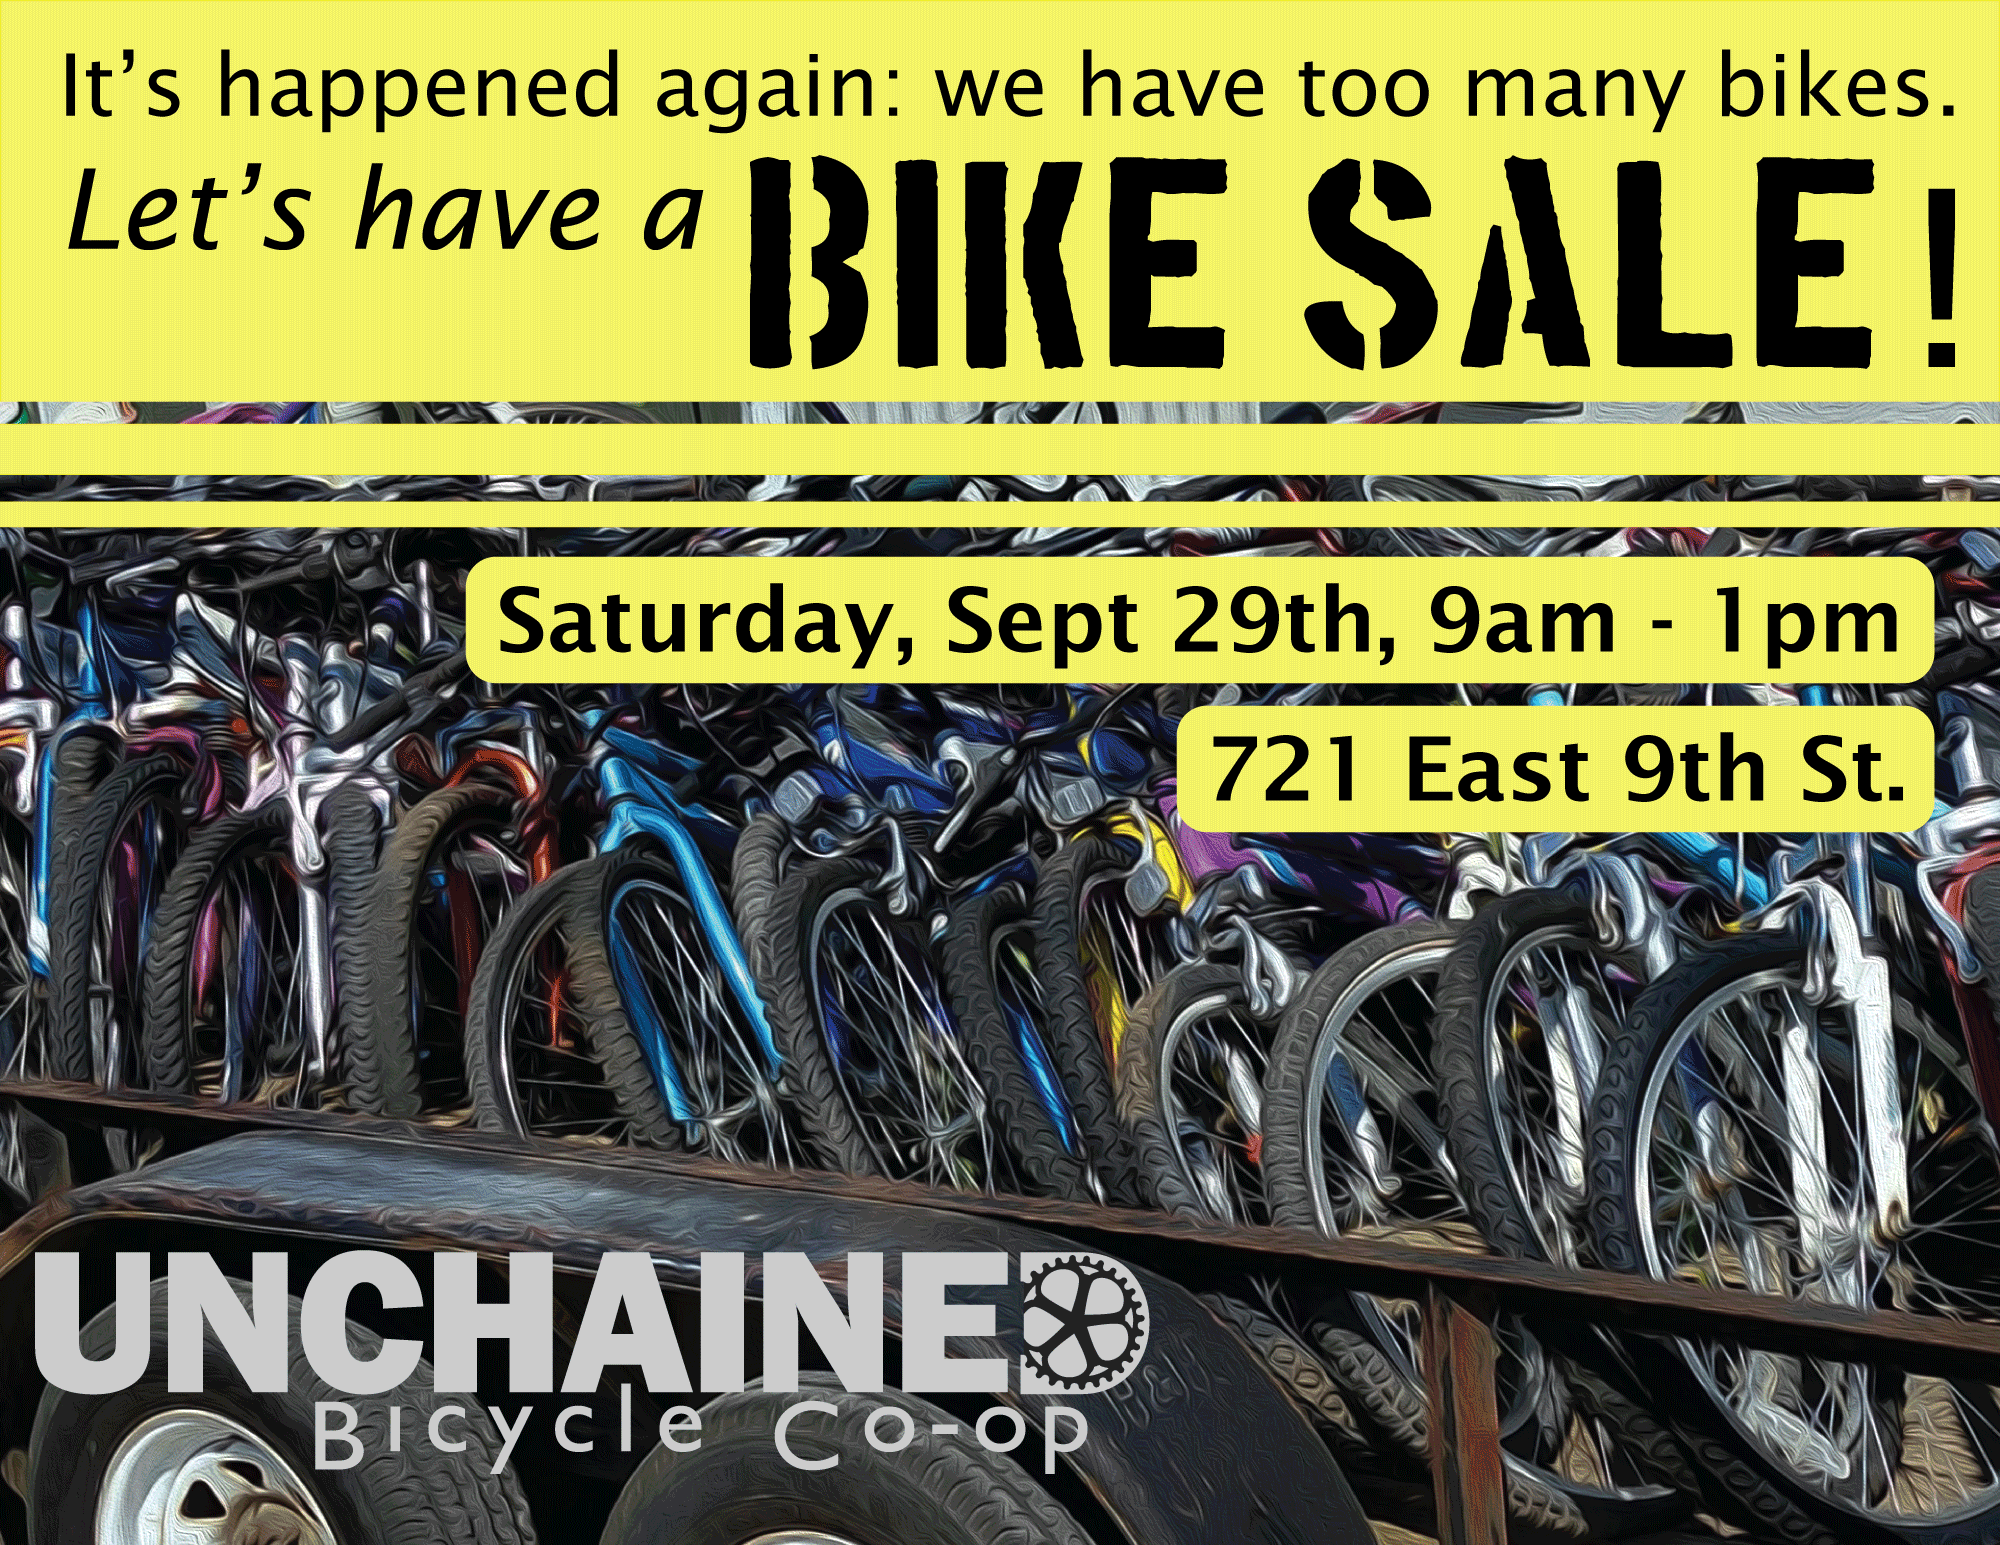 2018 Bike Sale - Saturday, September 29th, 9 a.m - 1 p.m.